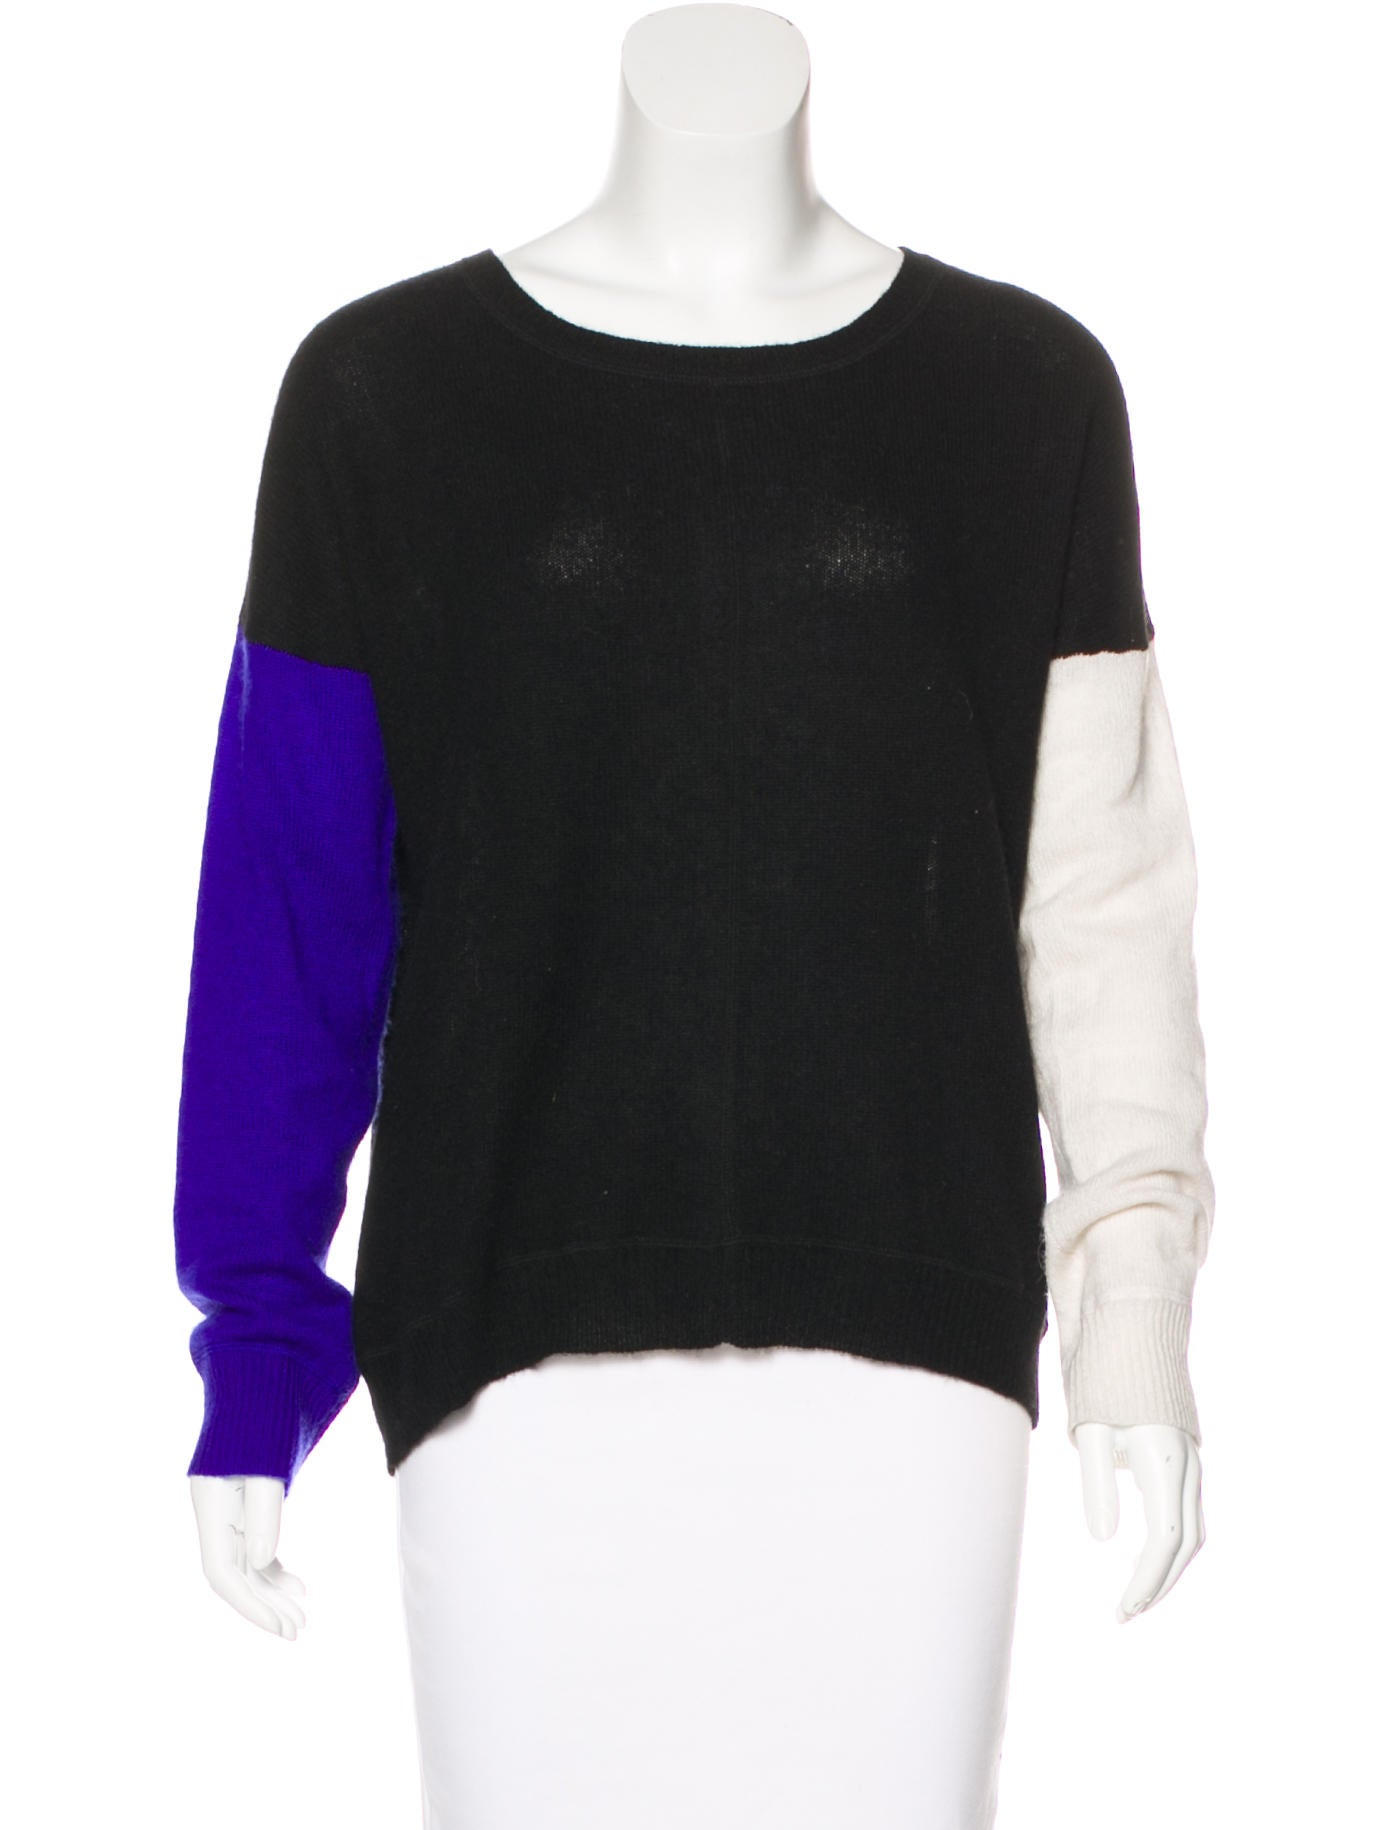 360 Cashmere Cashmere Colorblock Sweater In China Online Outlet Sale Online Clearance Best Seller 22VCJbatc